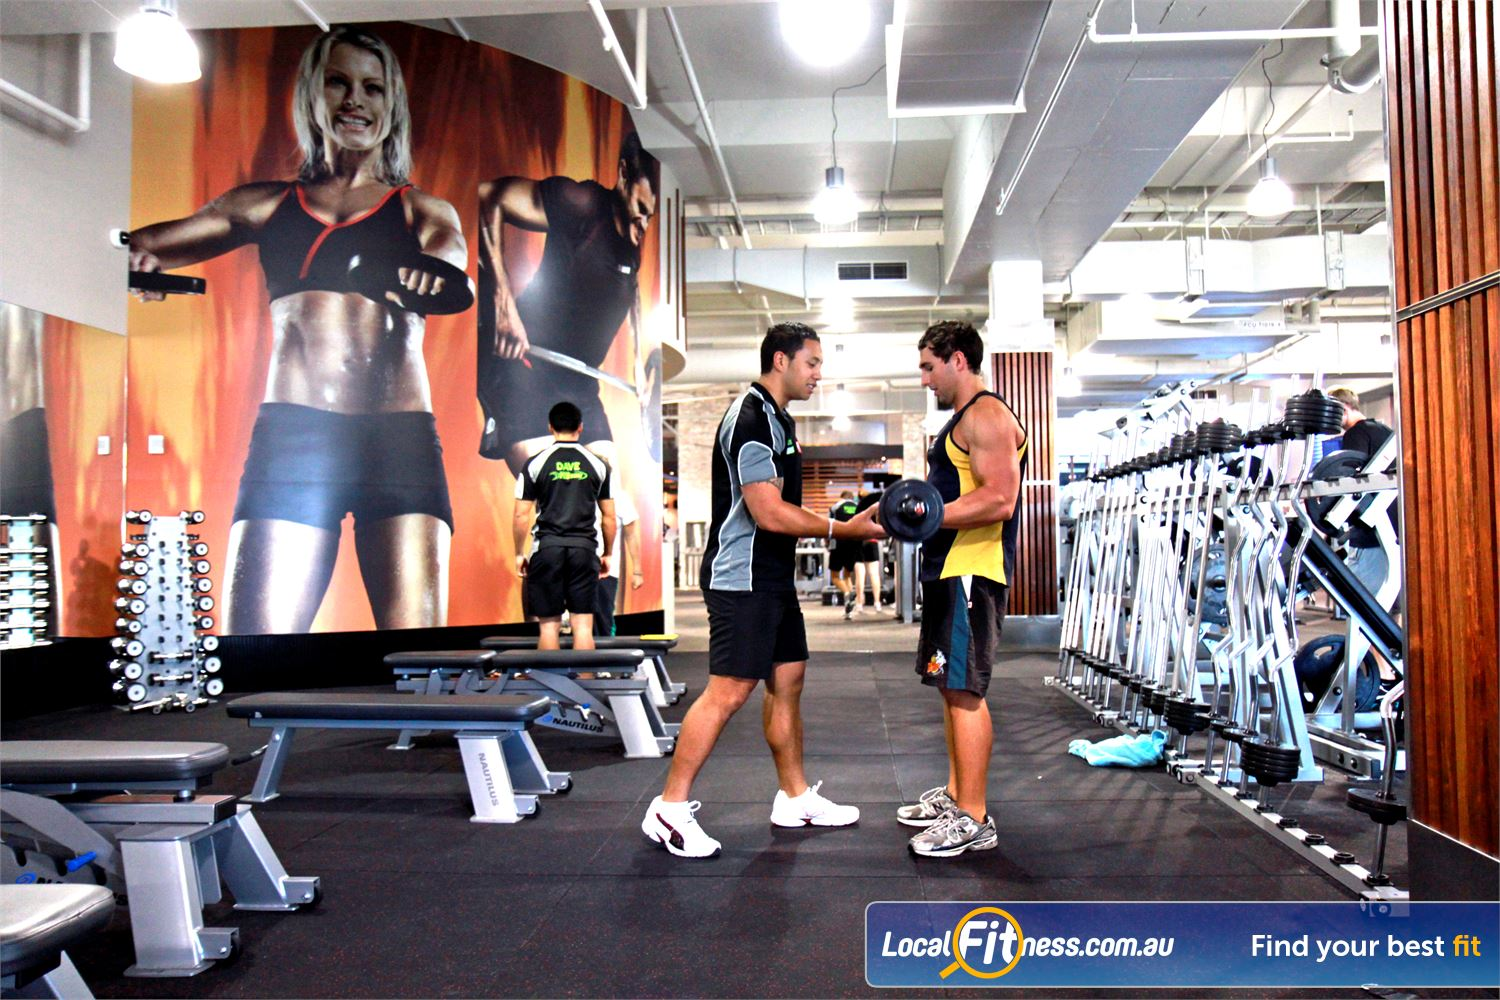 Goodlife Health Clubs Robina Free-weight training when you want with 24 hour Robina gym access.